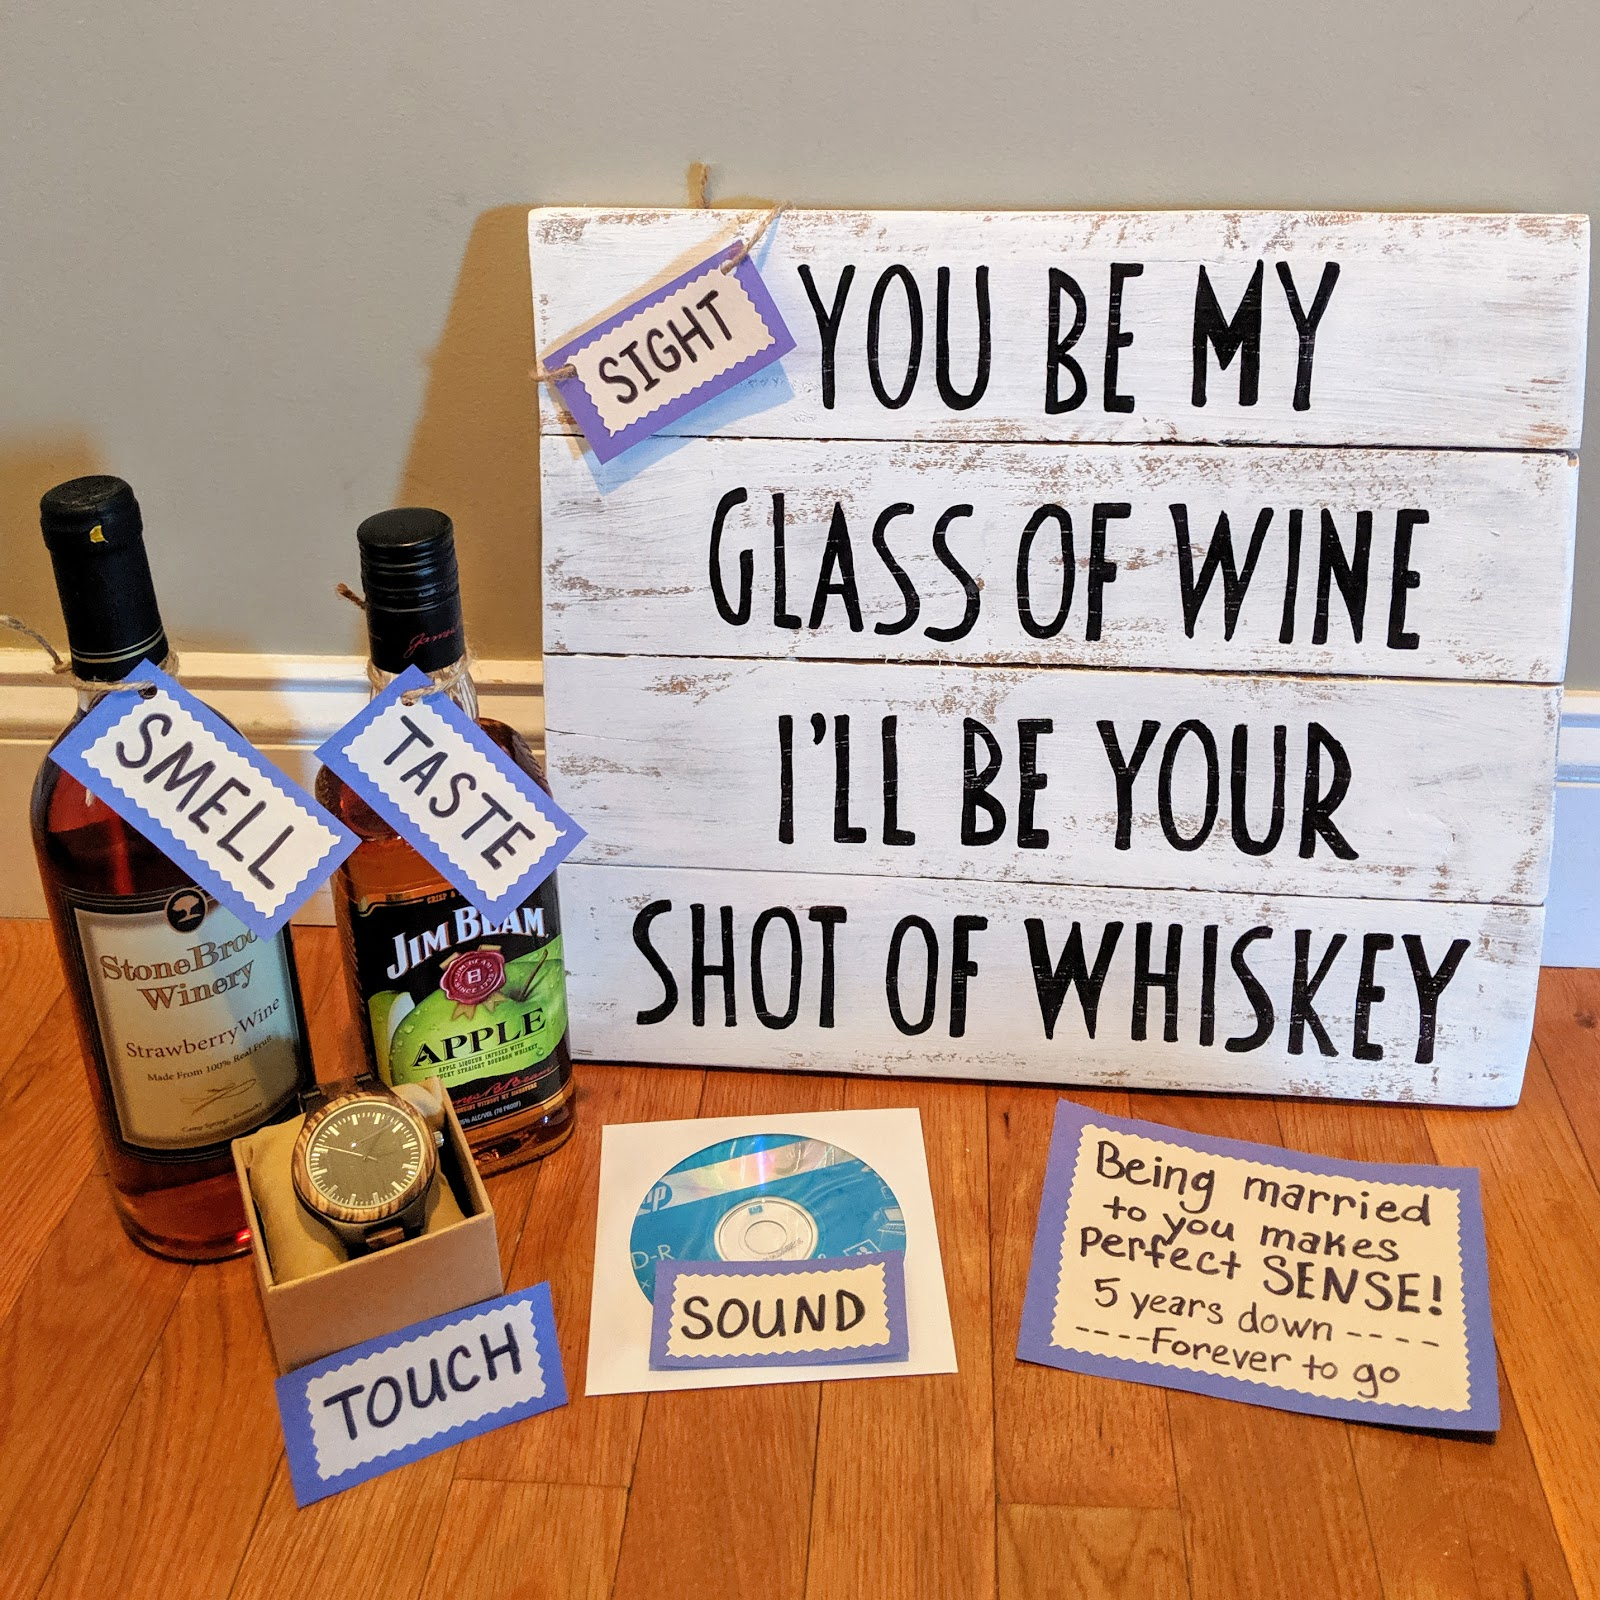 5 Year Wedding Anniversary Gift Idea